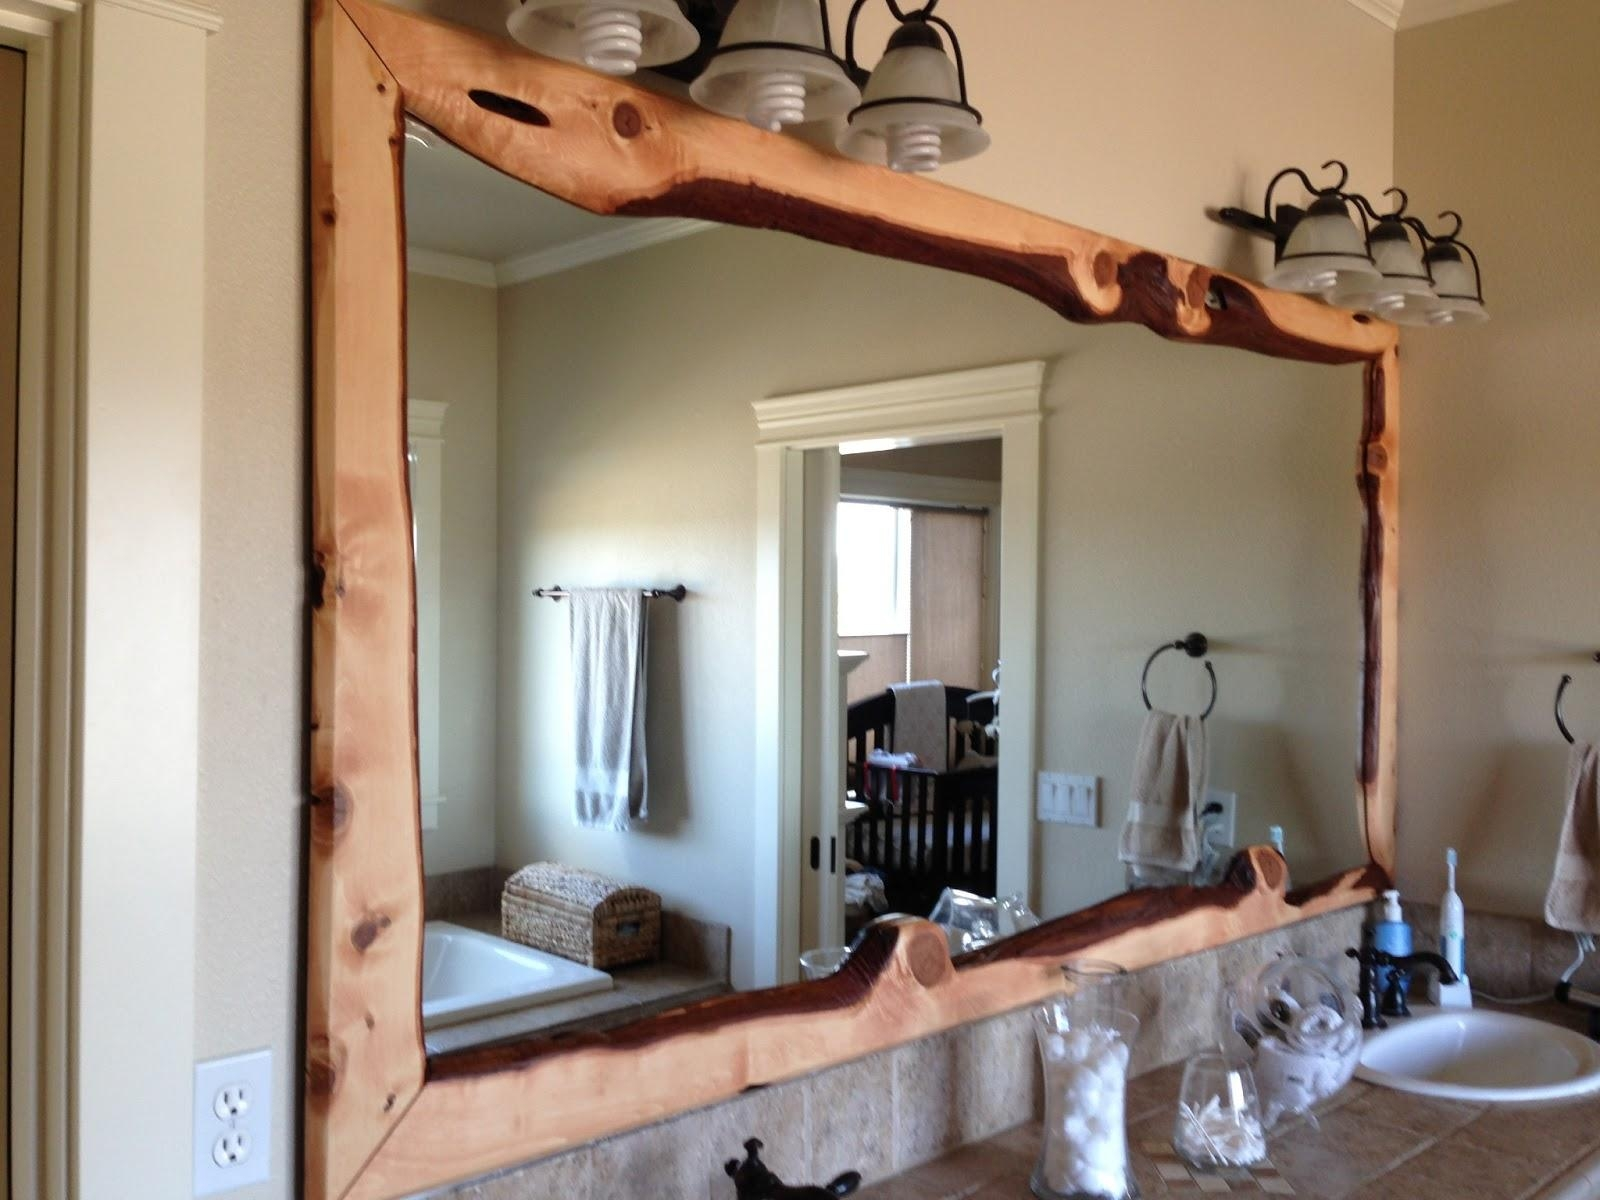 20 ideas of decorative wooden mirrors mirror ideas 15214